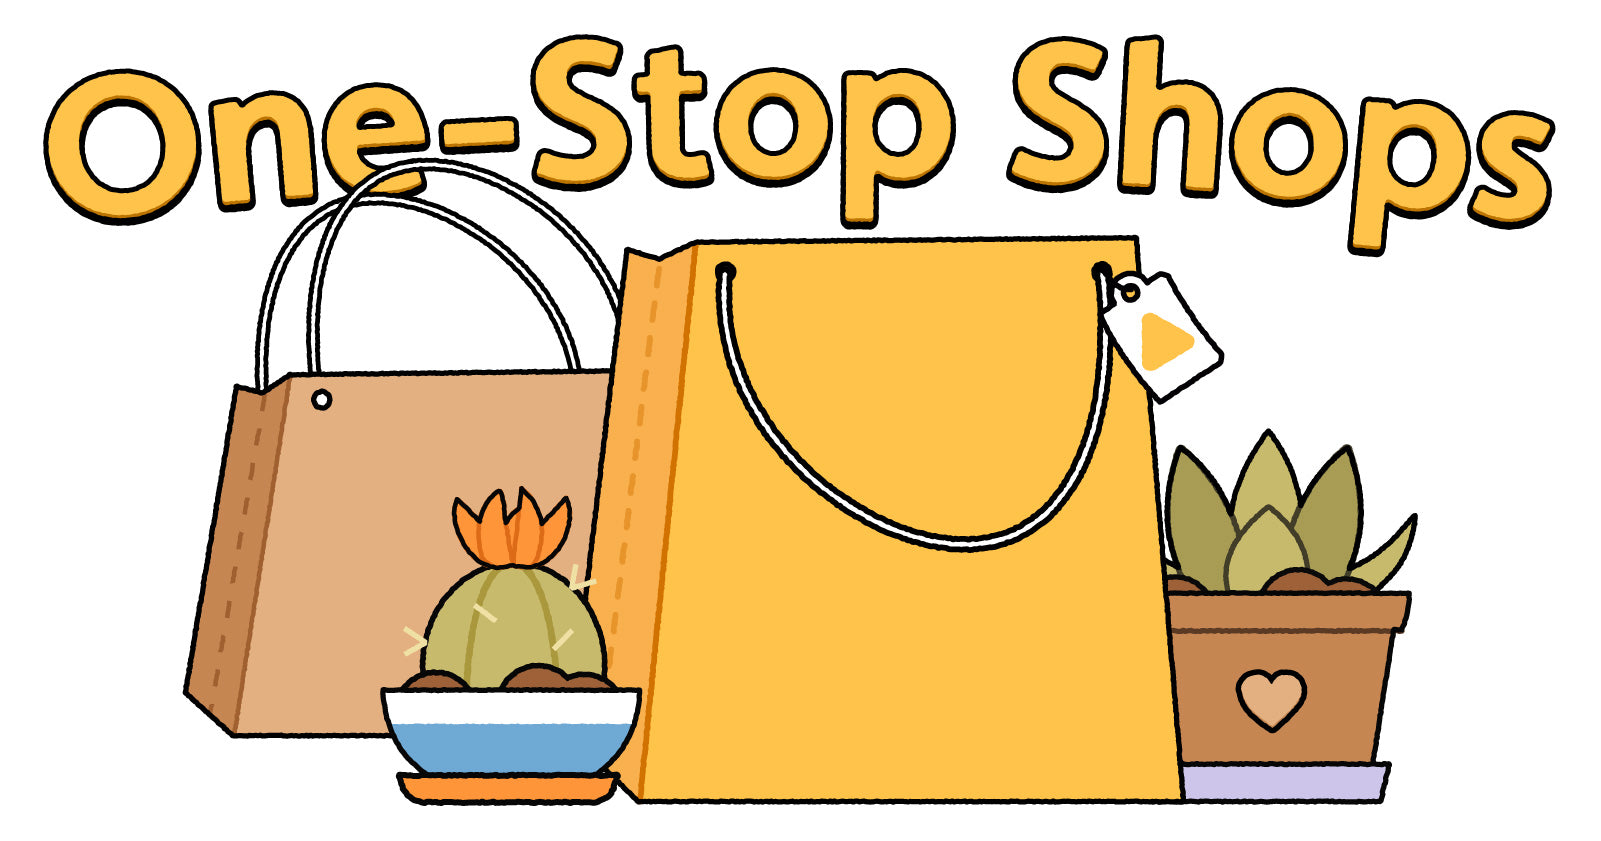 One-Stop Shops